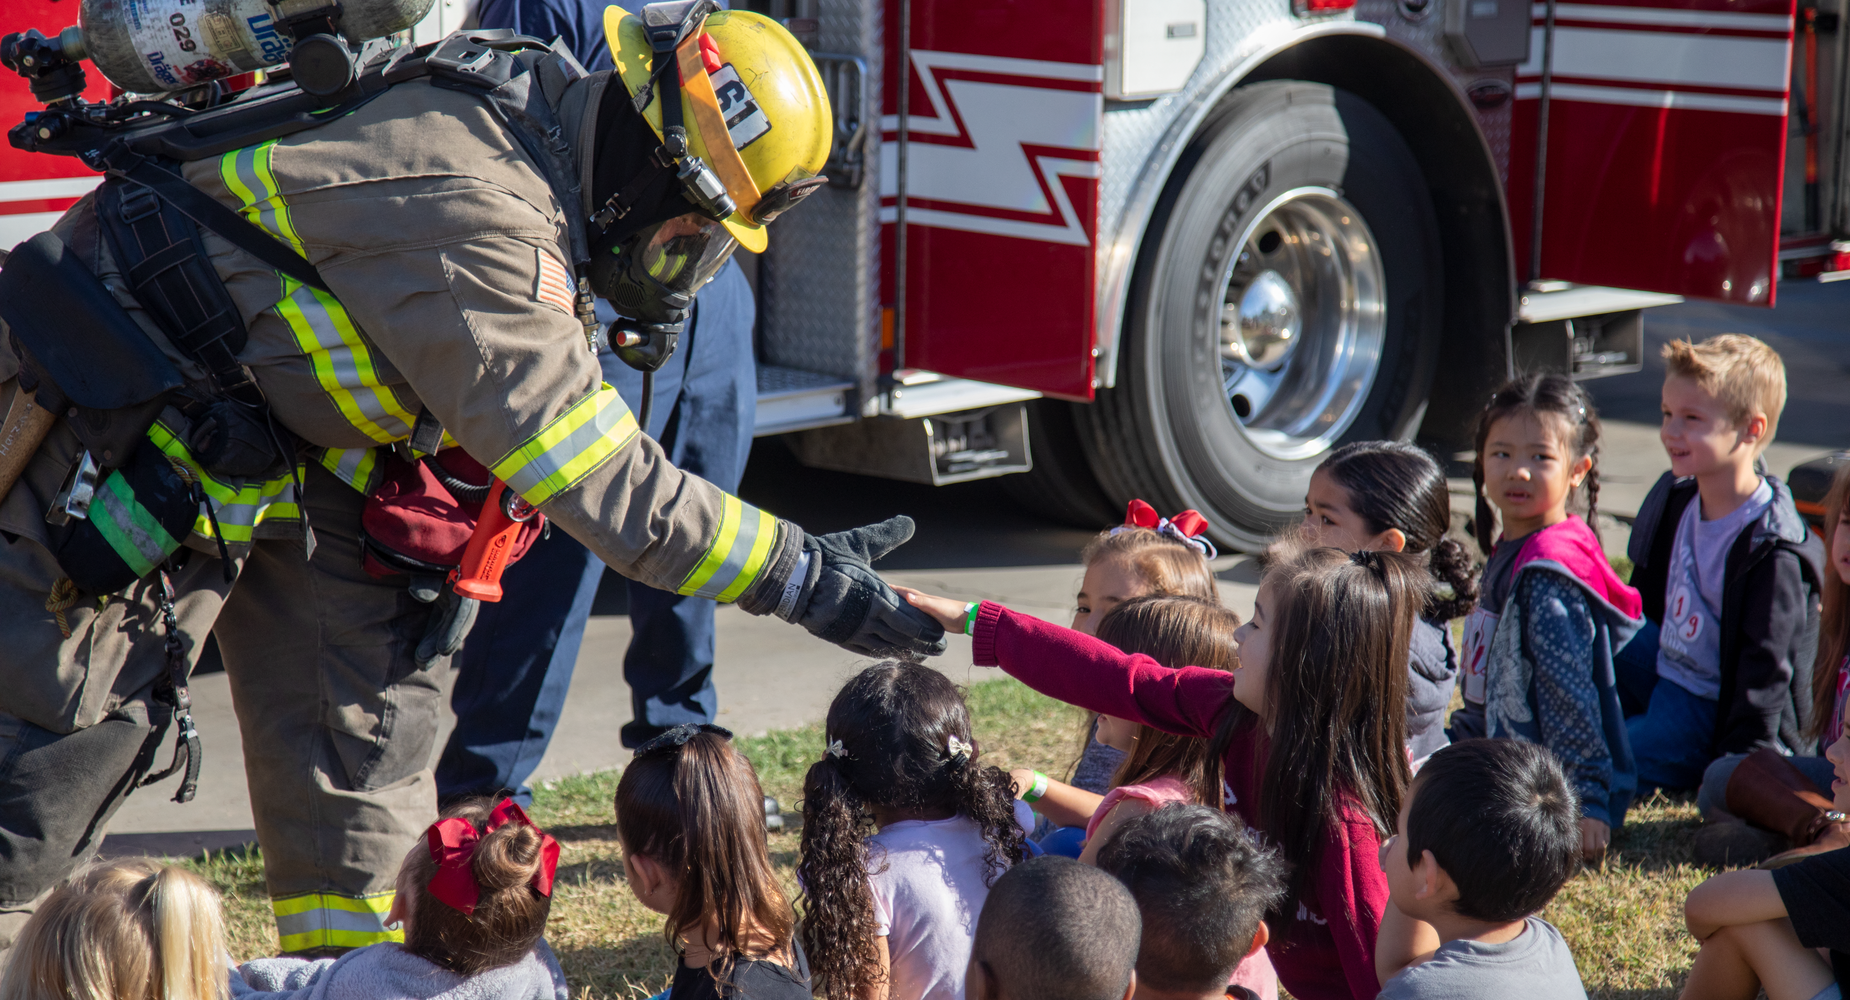 Mission Valley Fire Station Field Trip